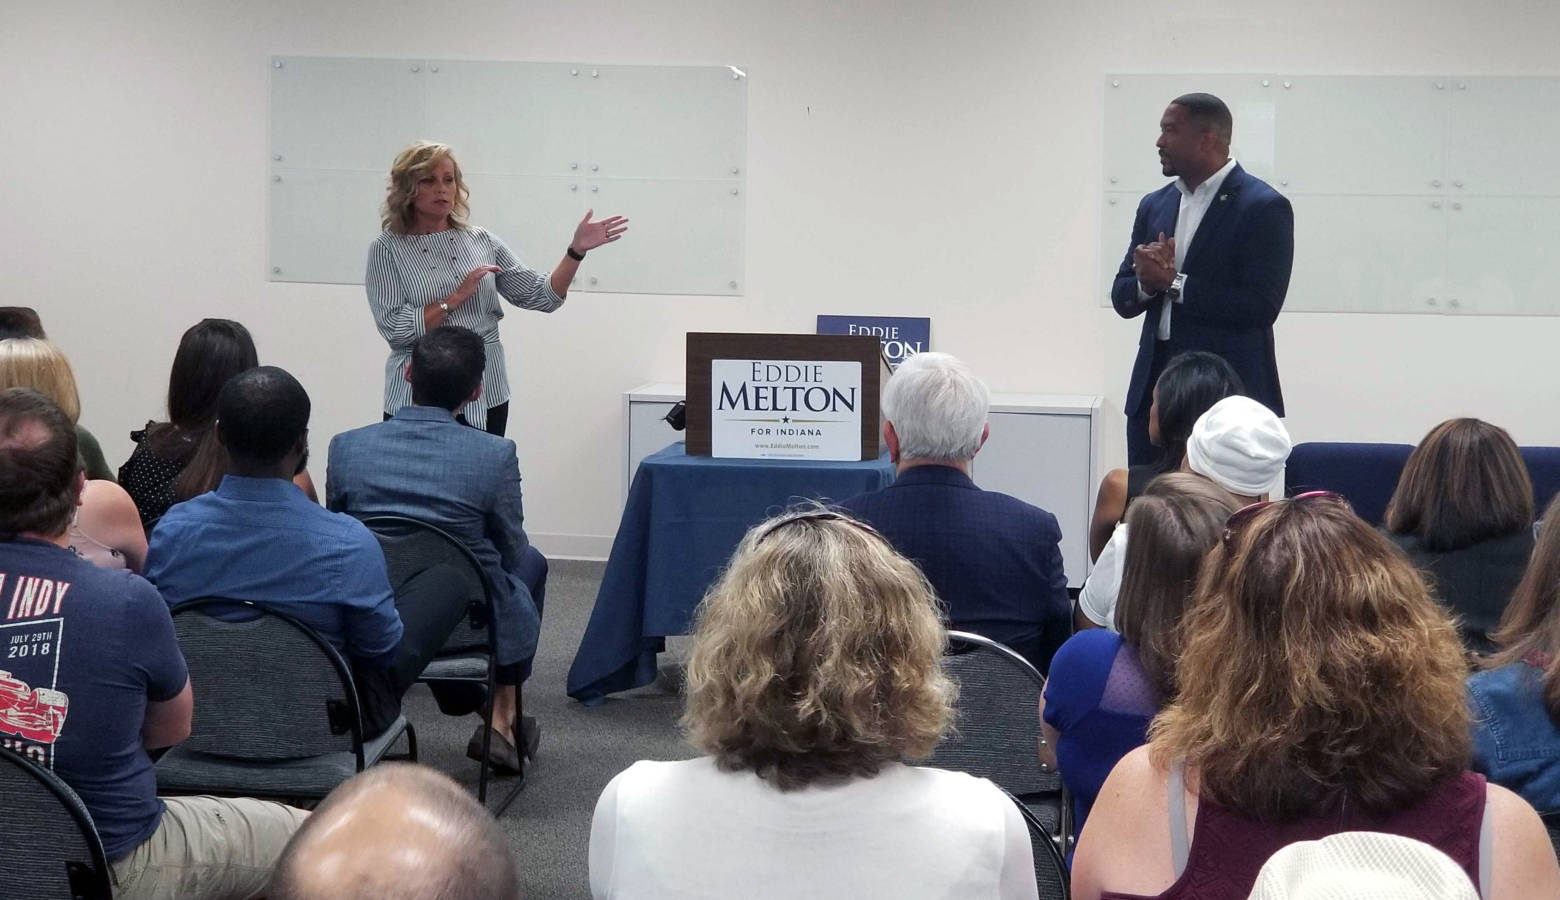 State Superintendent of Public Instruction Jennifer McCormick and Sen. Eddie Melton (D-Gary) give opening remarks at the first stop on their statewide listening tour. (Jeanie Lindsay/IPB News)